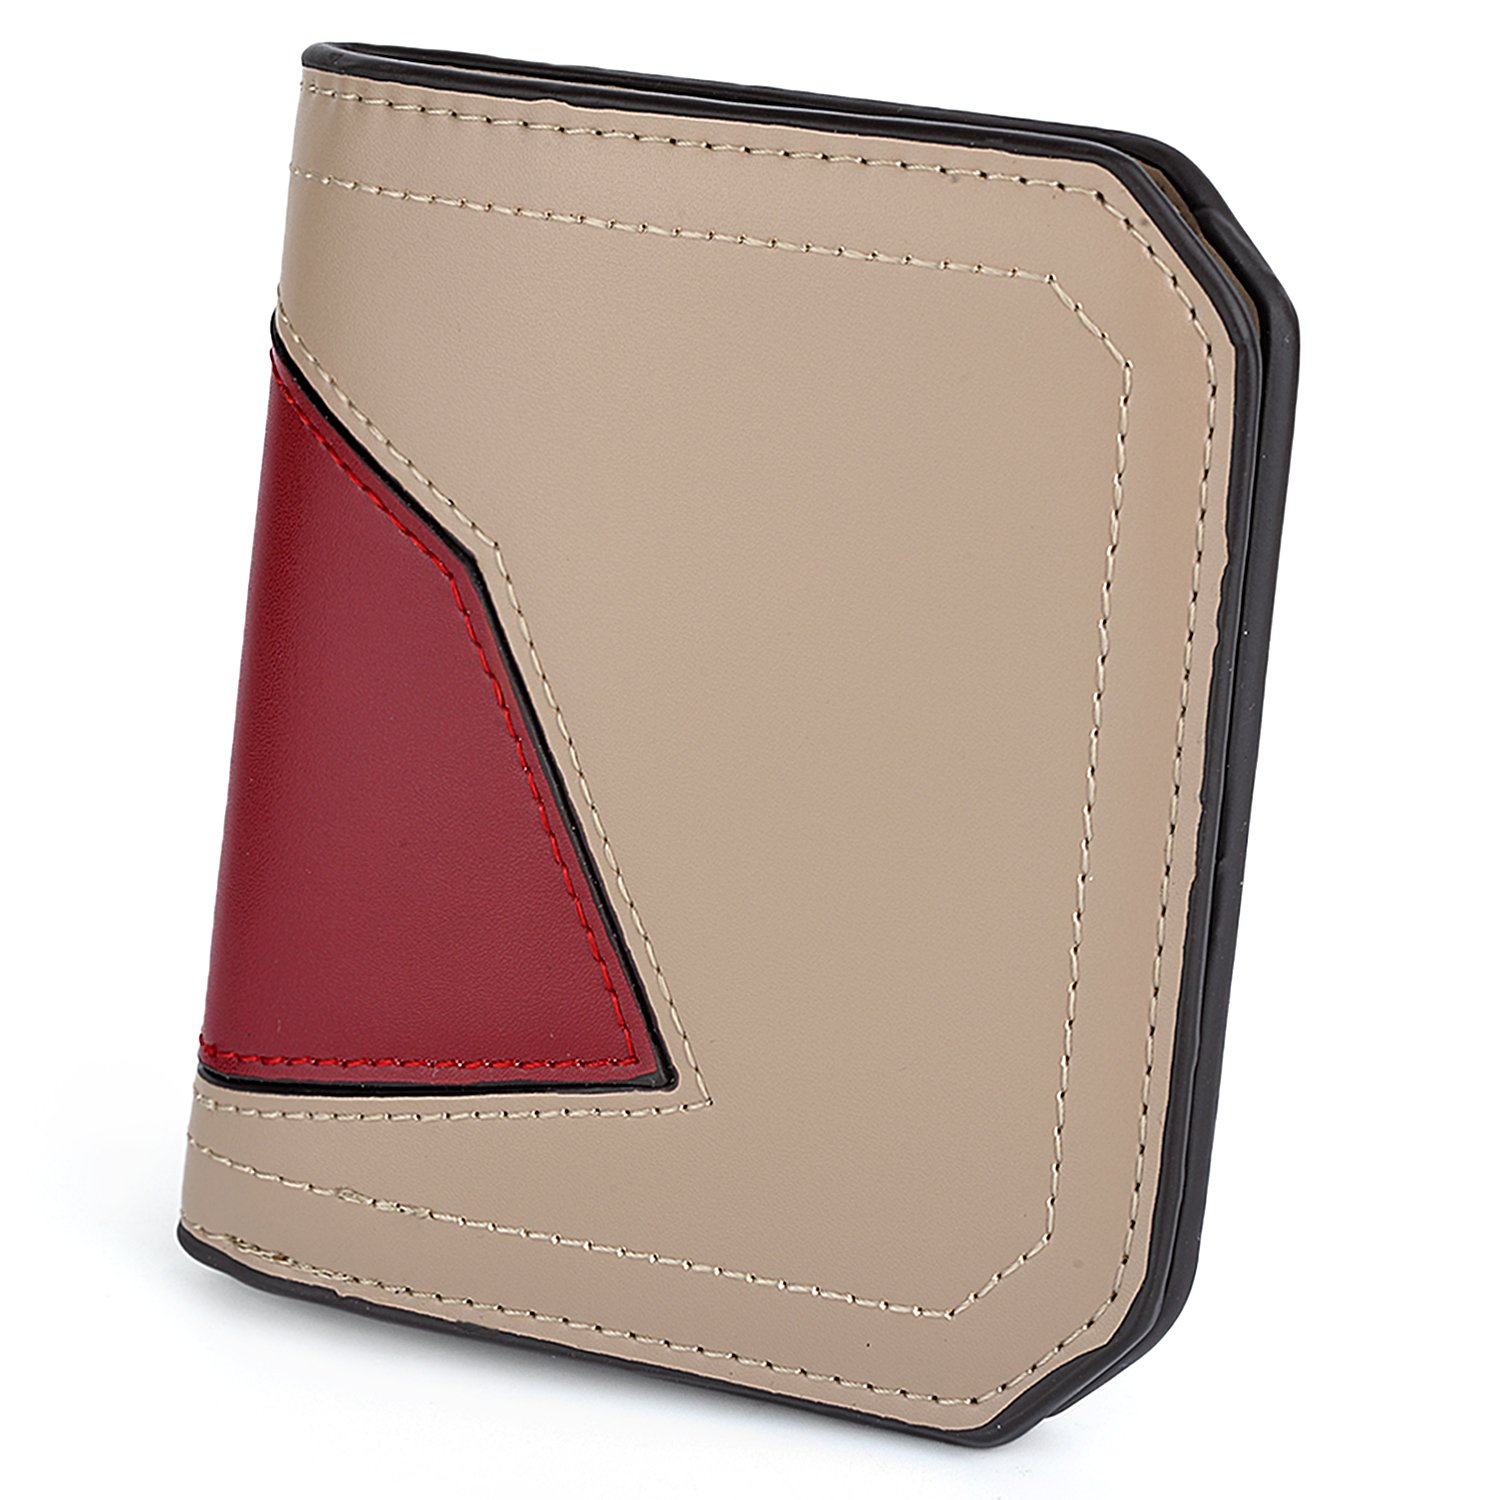 UTO Thin Wallet for Women Small Compact Bifold PU Leather Pocket Wallet Ladies Mini Purse with id Window Khaki